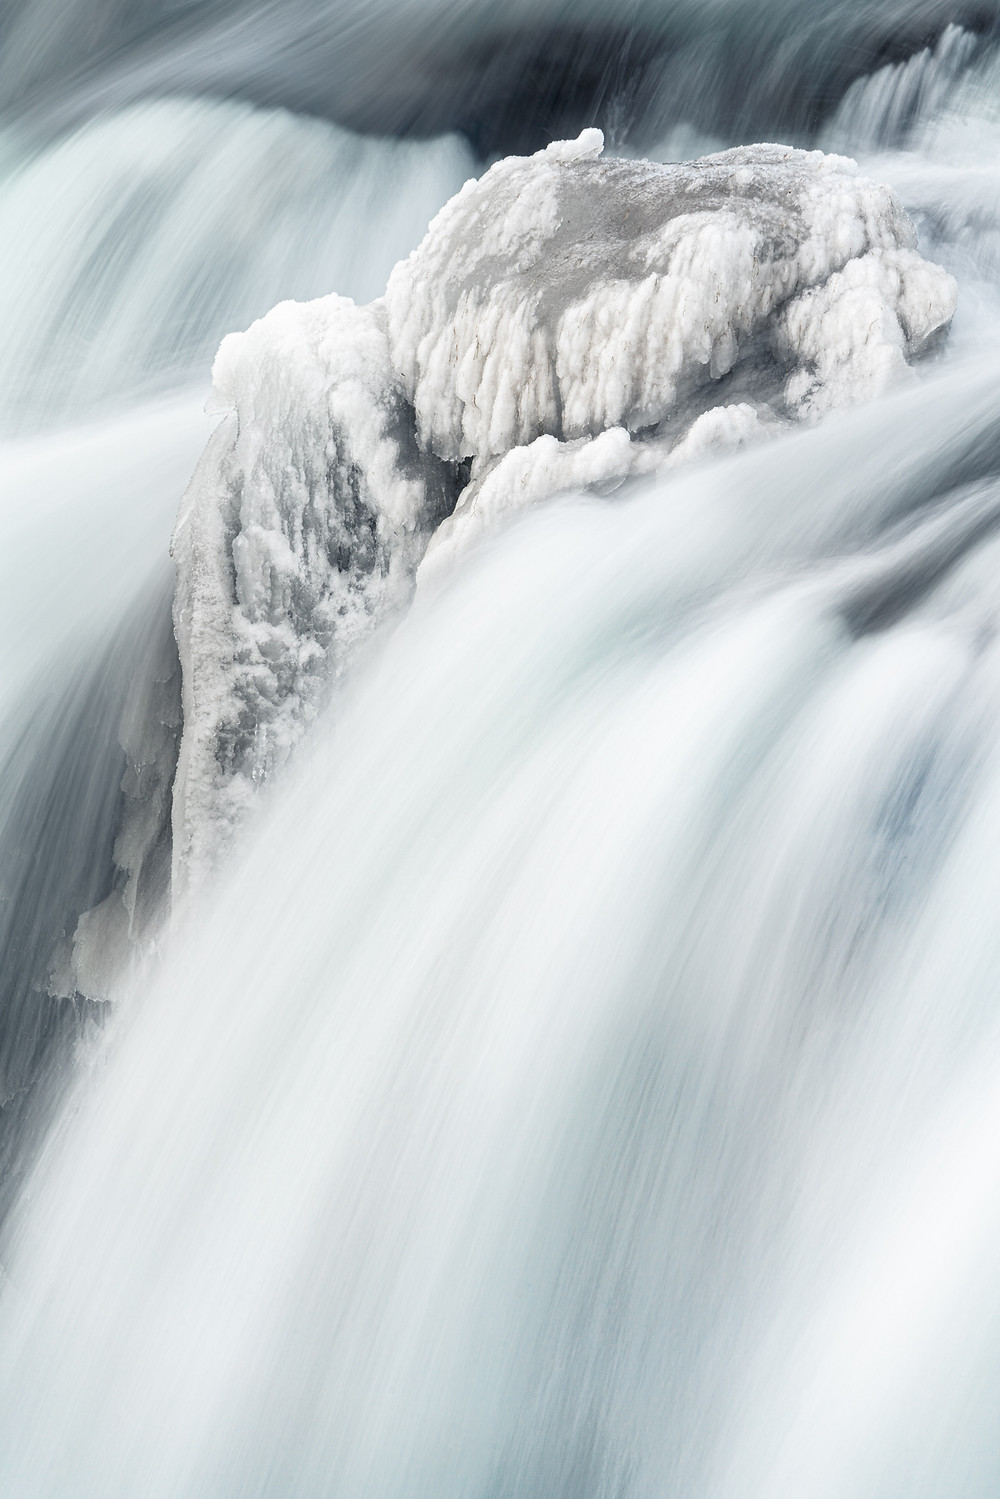 Ice and water of a waterfall